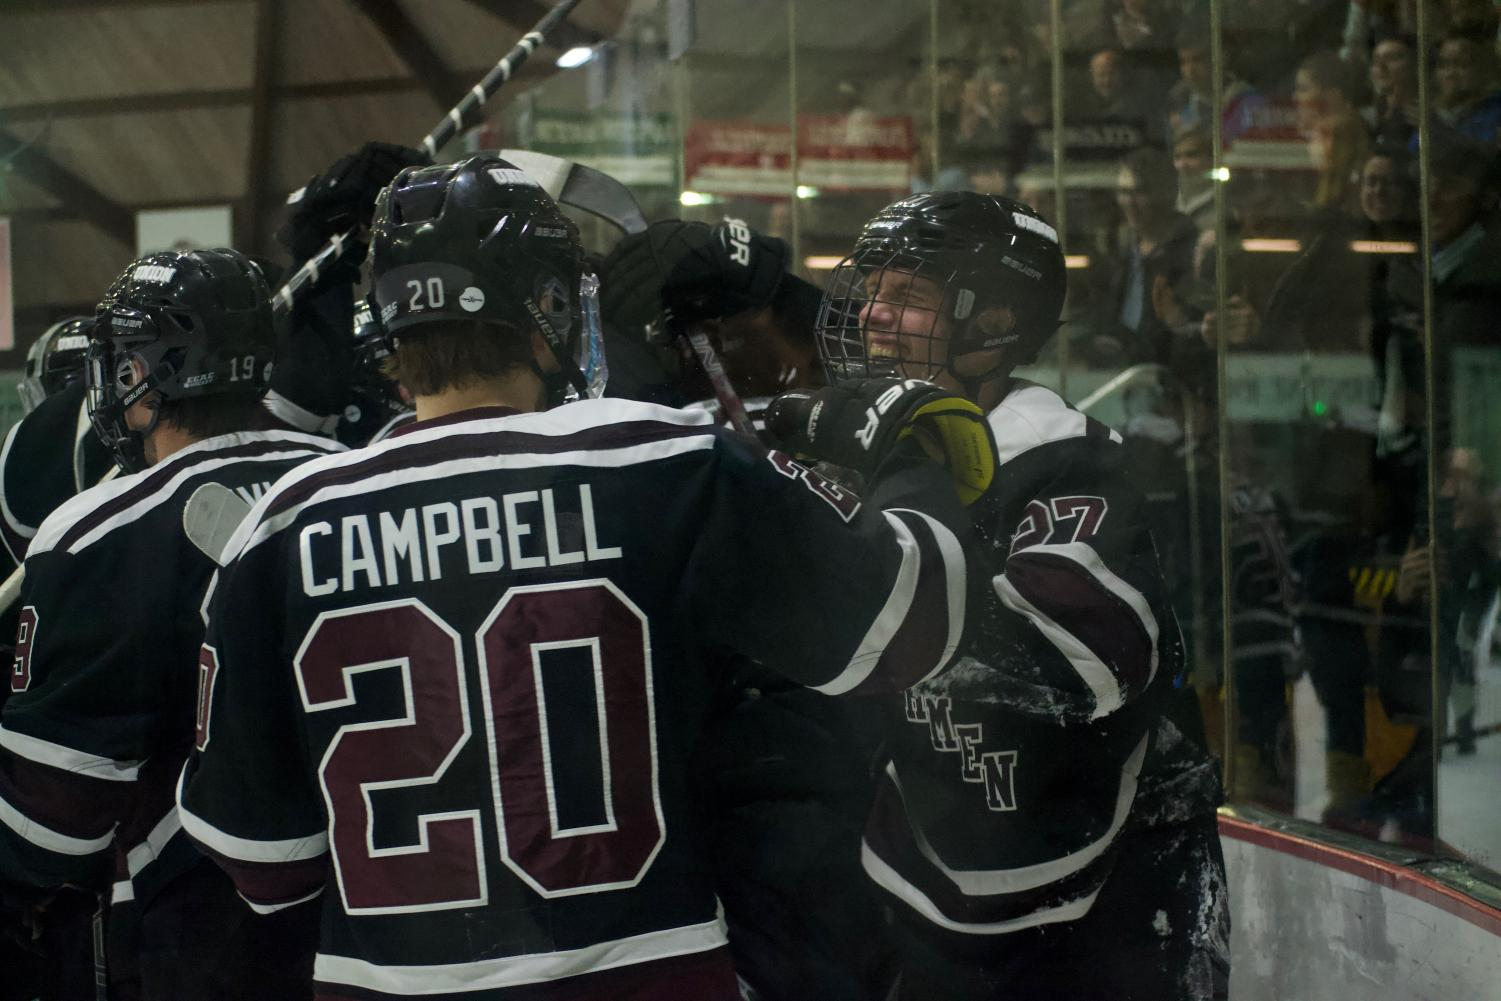 Union Men's Hockey team celebrating win against Yale on Friday. Photos by Joe Maher.